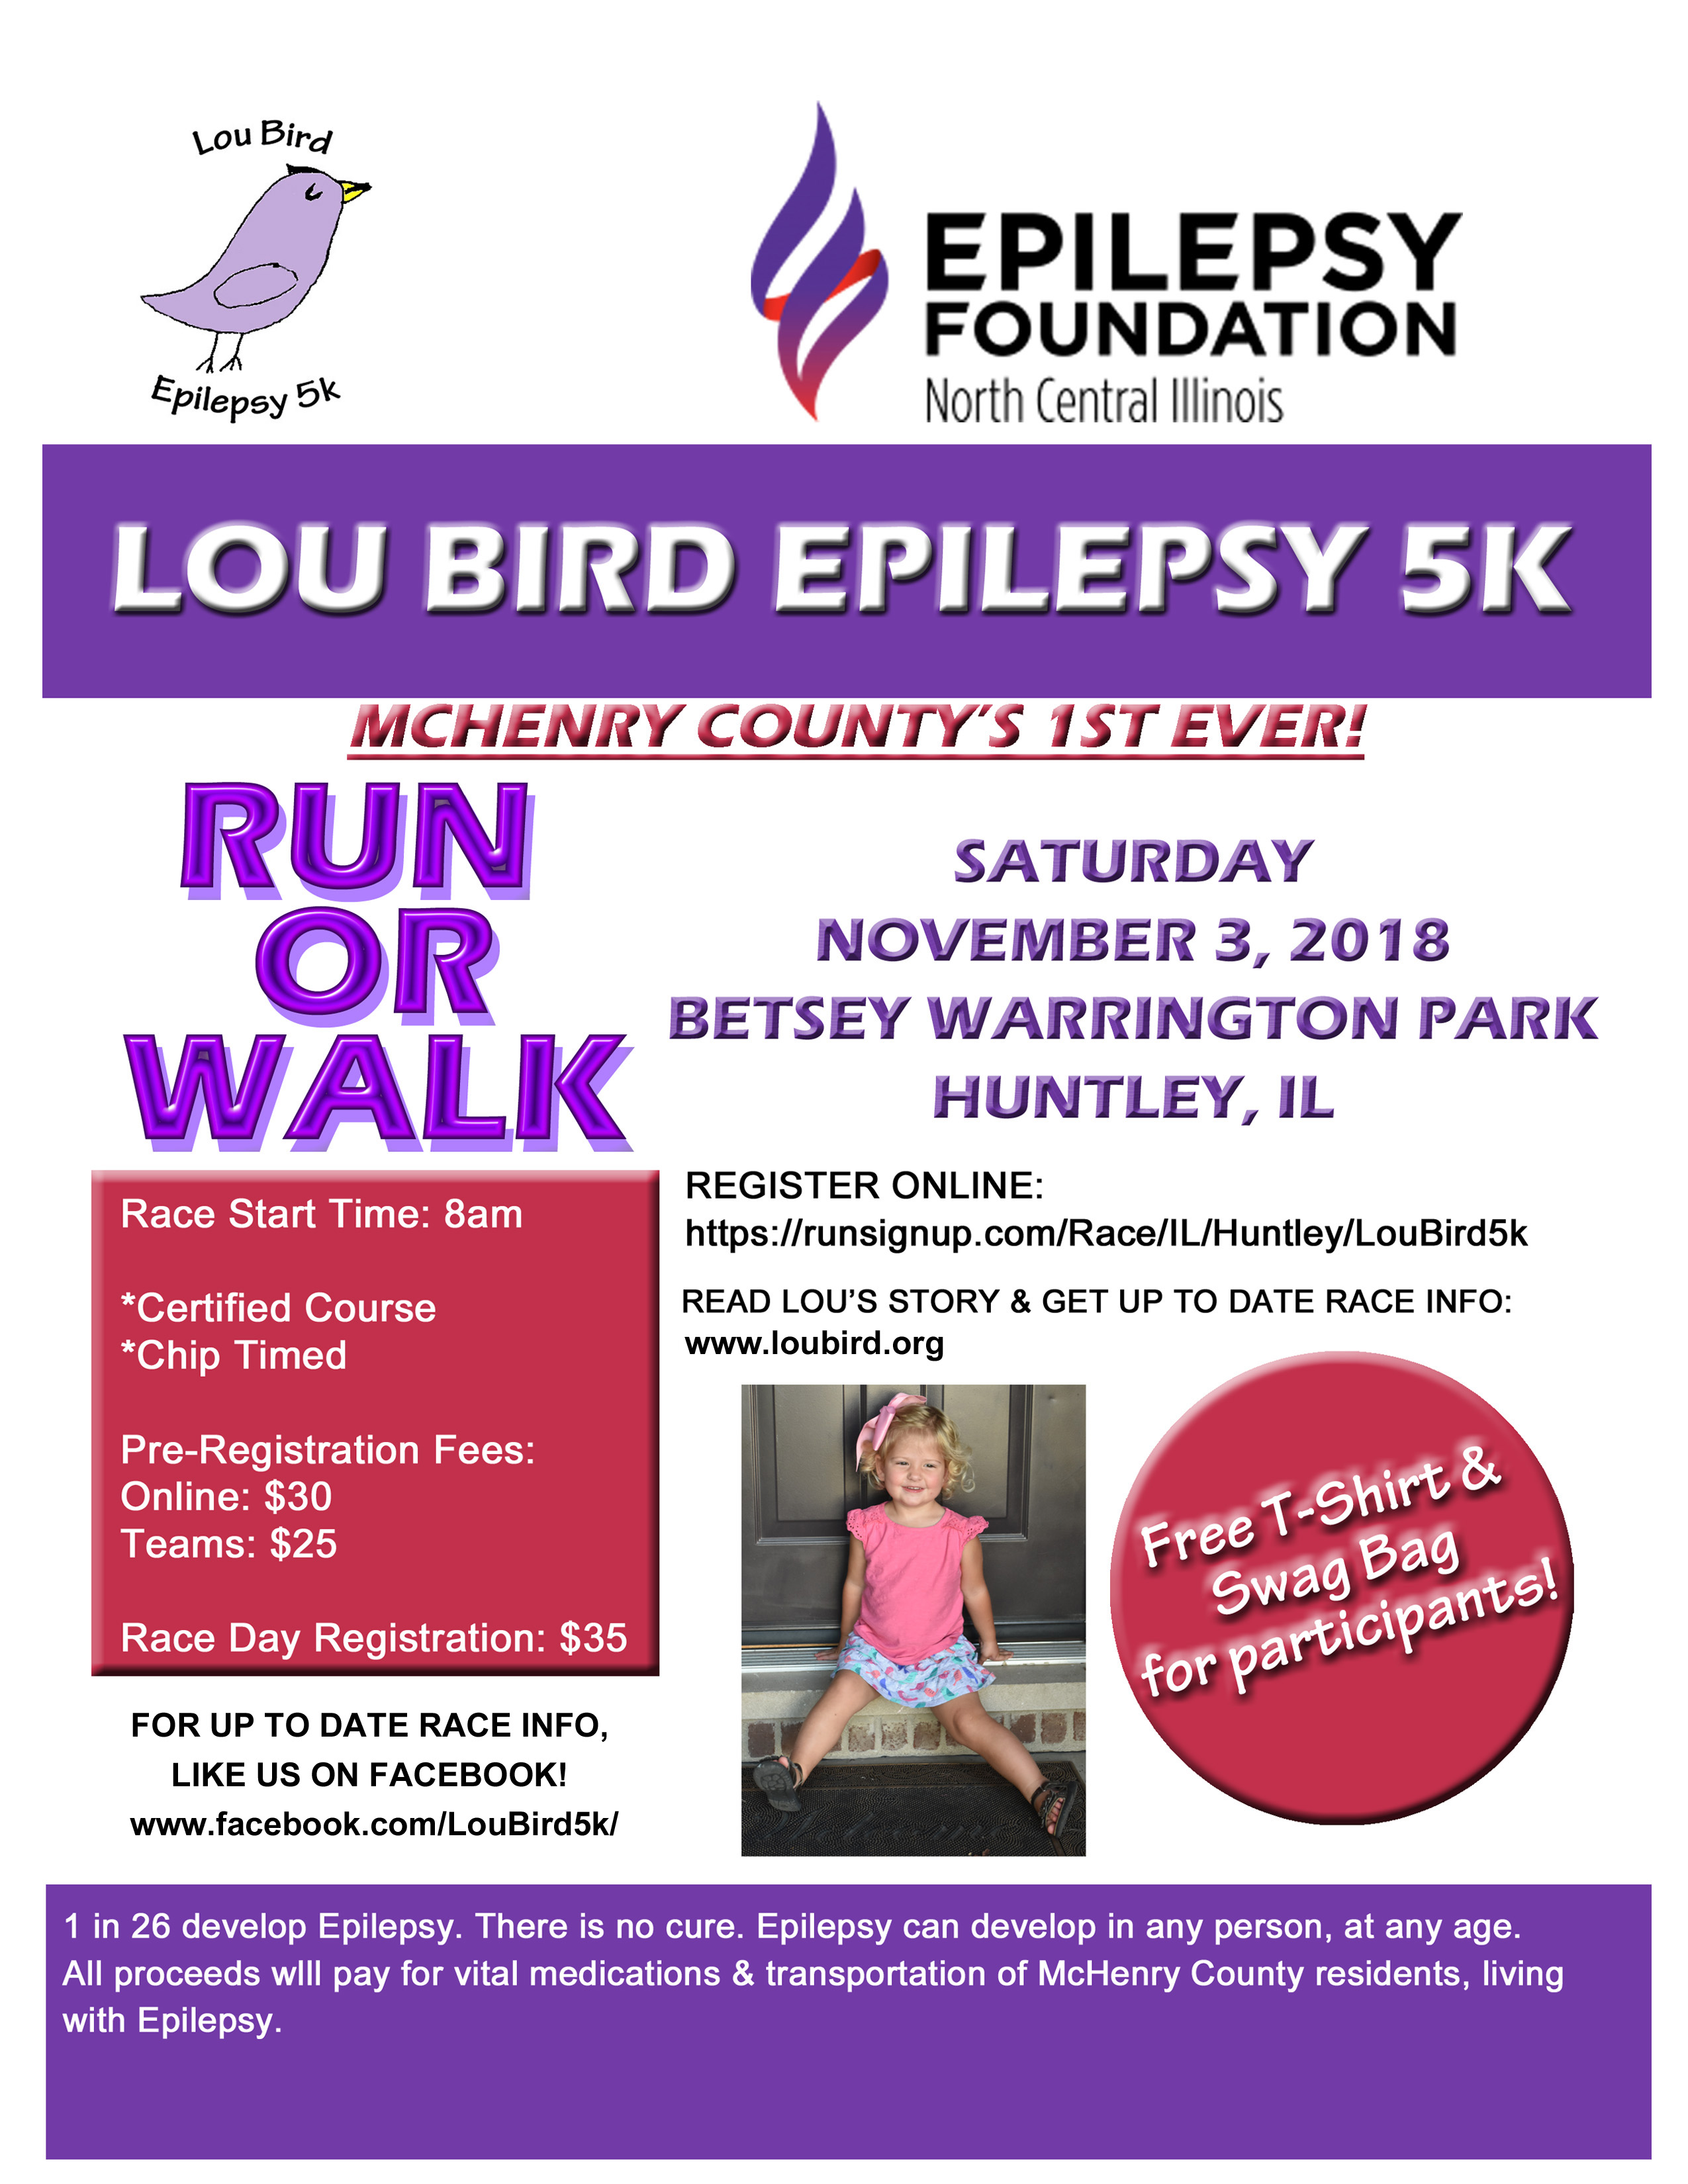 Helping the many faces of epilepsy in McHenry County; LouBird 5K Nov. 3 in Huntley